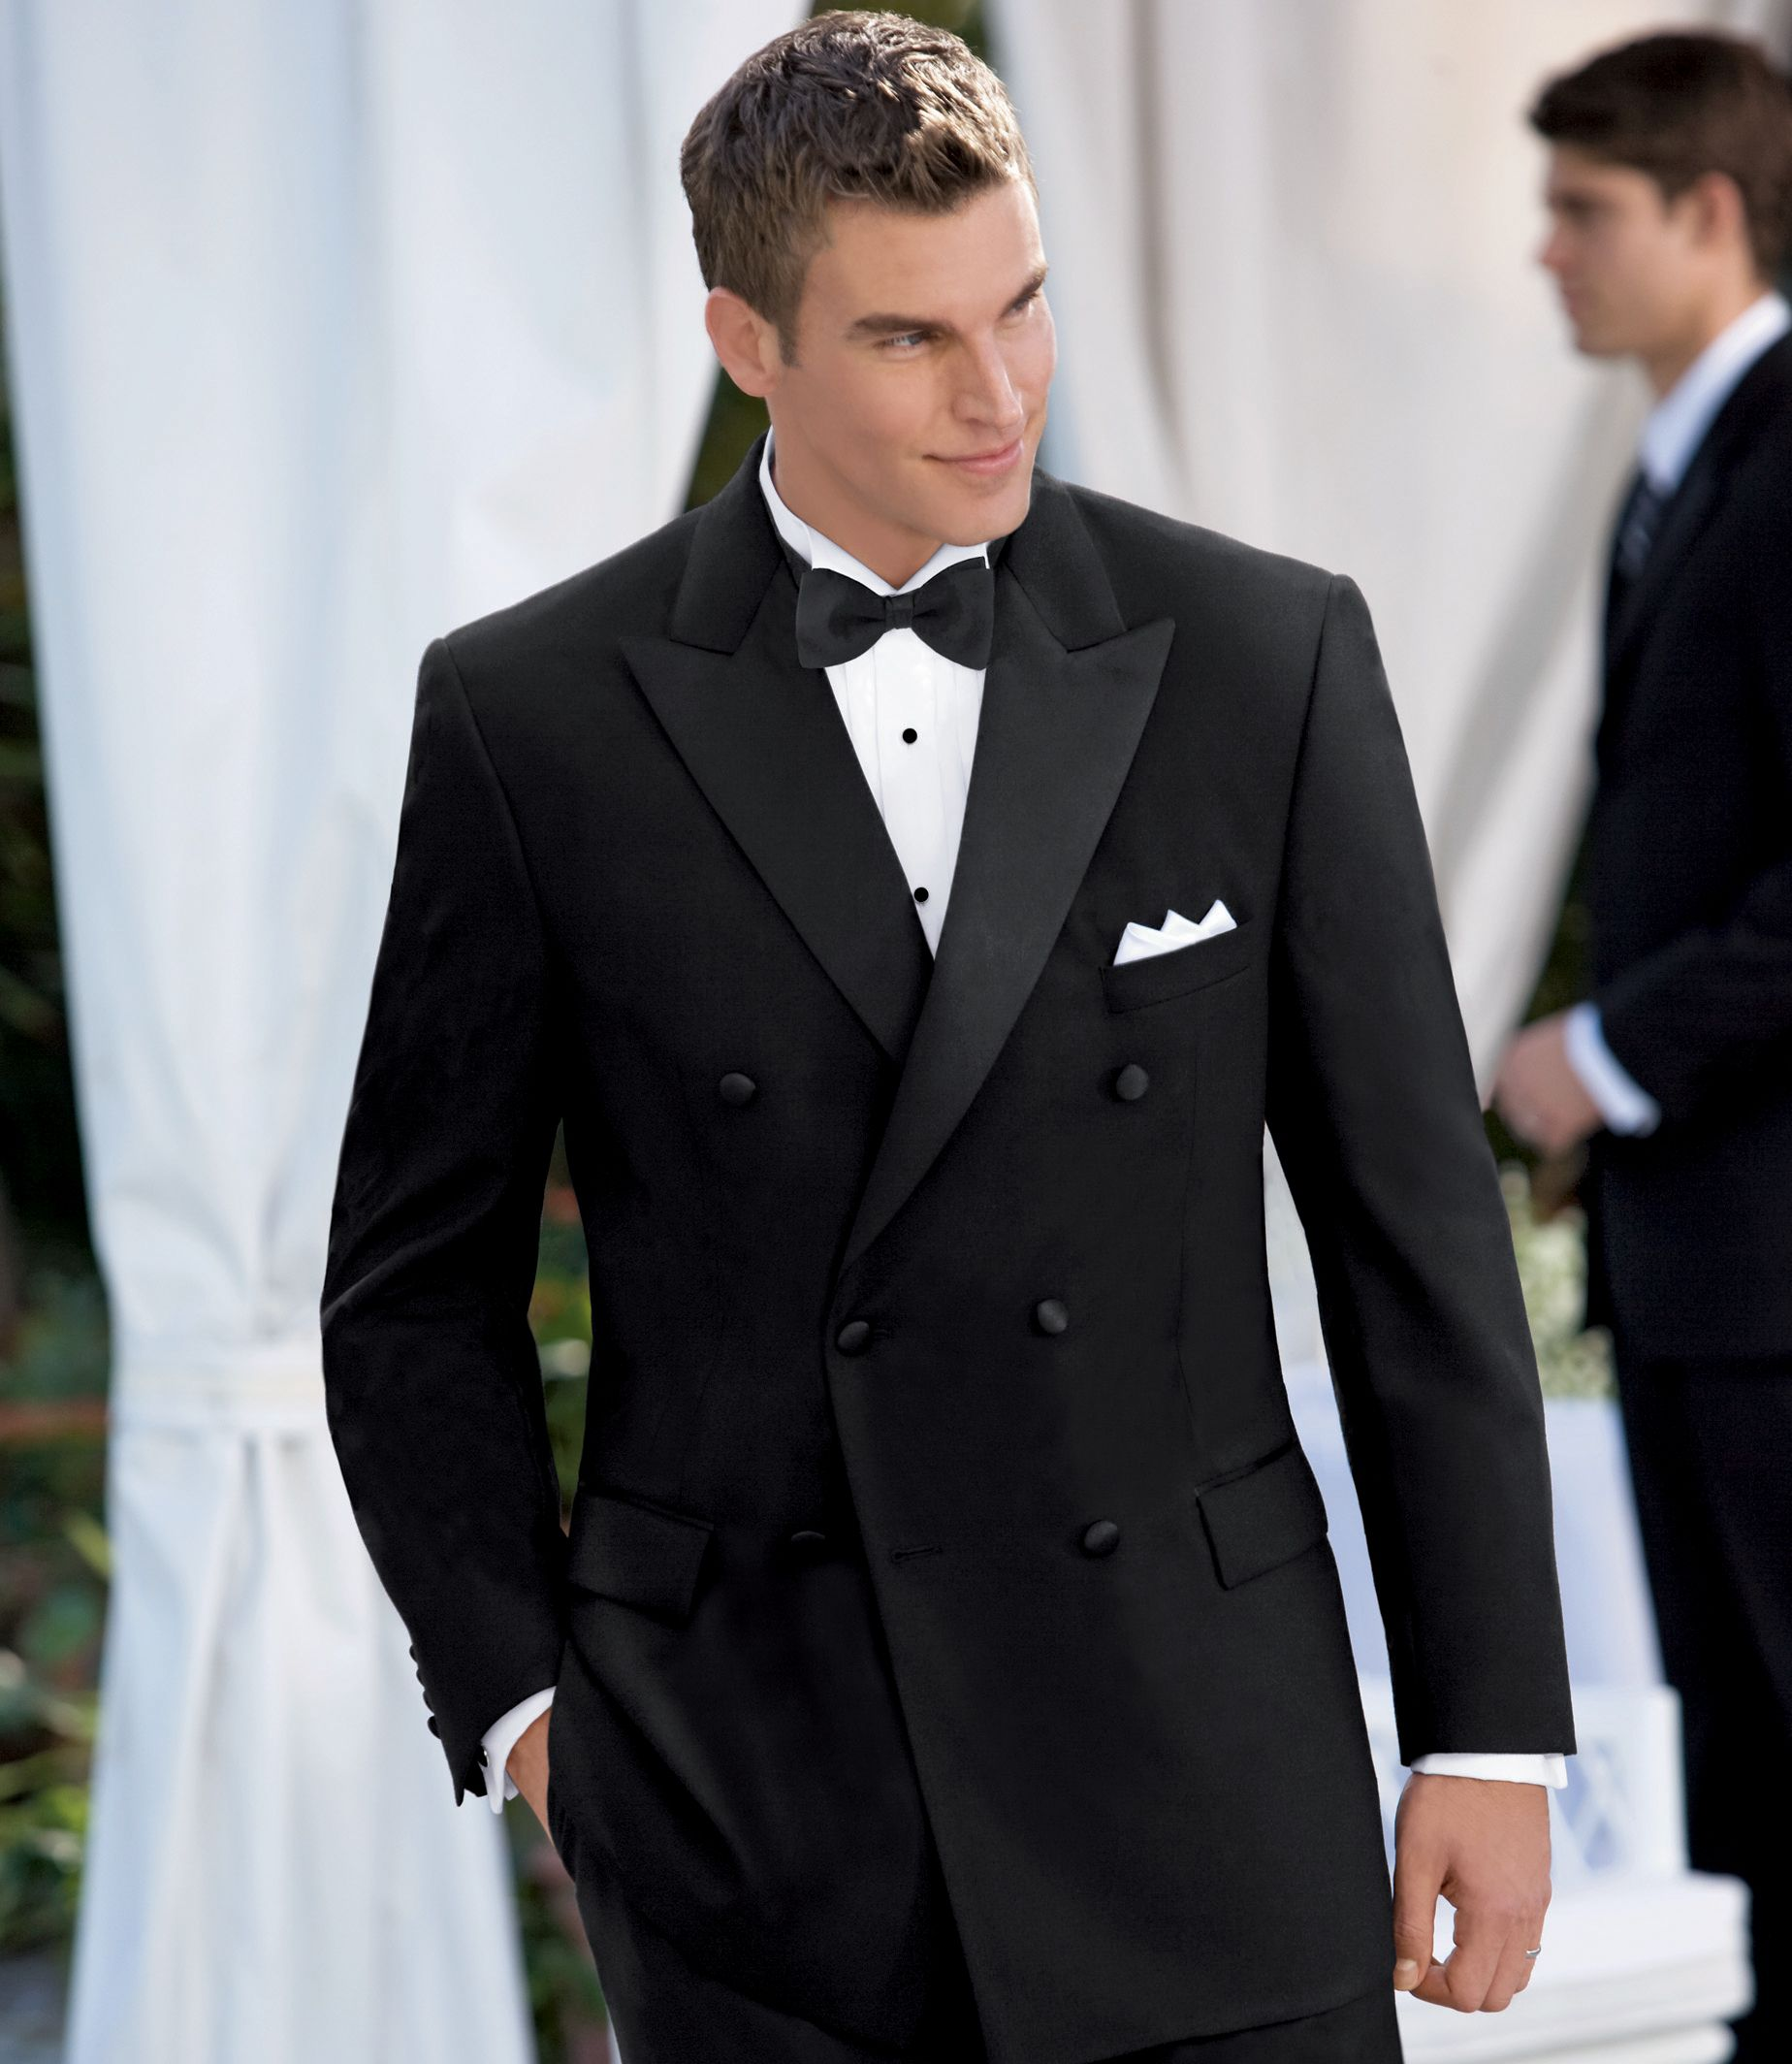 Men's Suit Black Double-Breasted Tuxedo Jacket JoS. A. Bank - BLACK - 40 - REGULAR